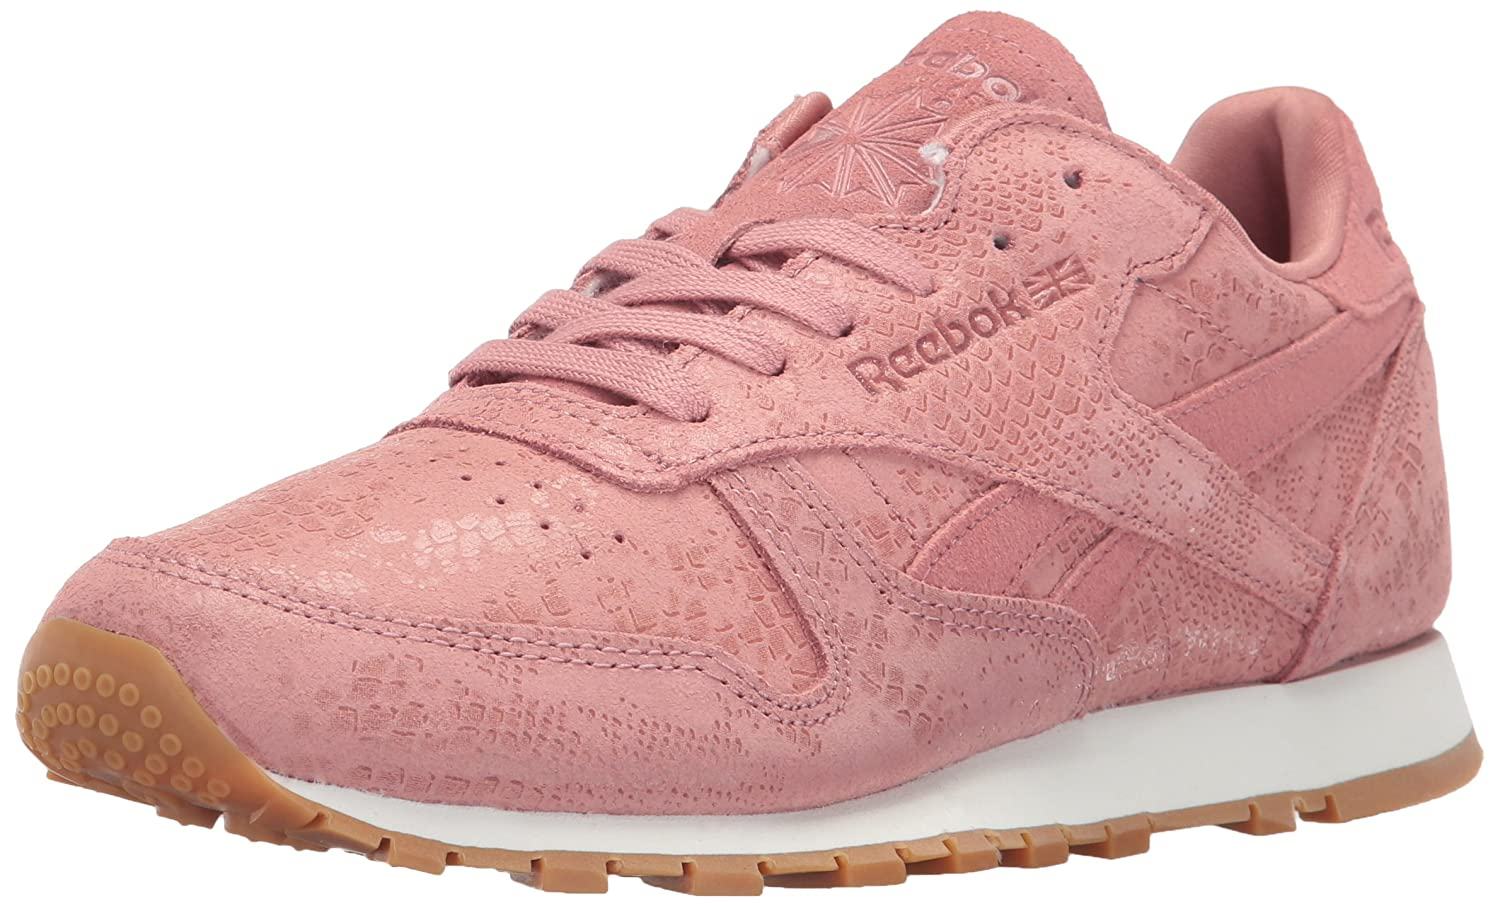 Reebok Women's CL Lthr Clean Exotic Print Track Shoe B01NBU632N 7 B(M) US|Sandy Rose/Chalk/Gum